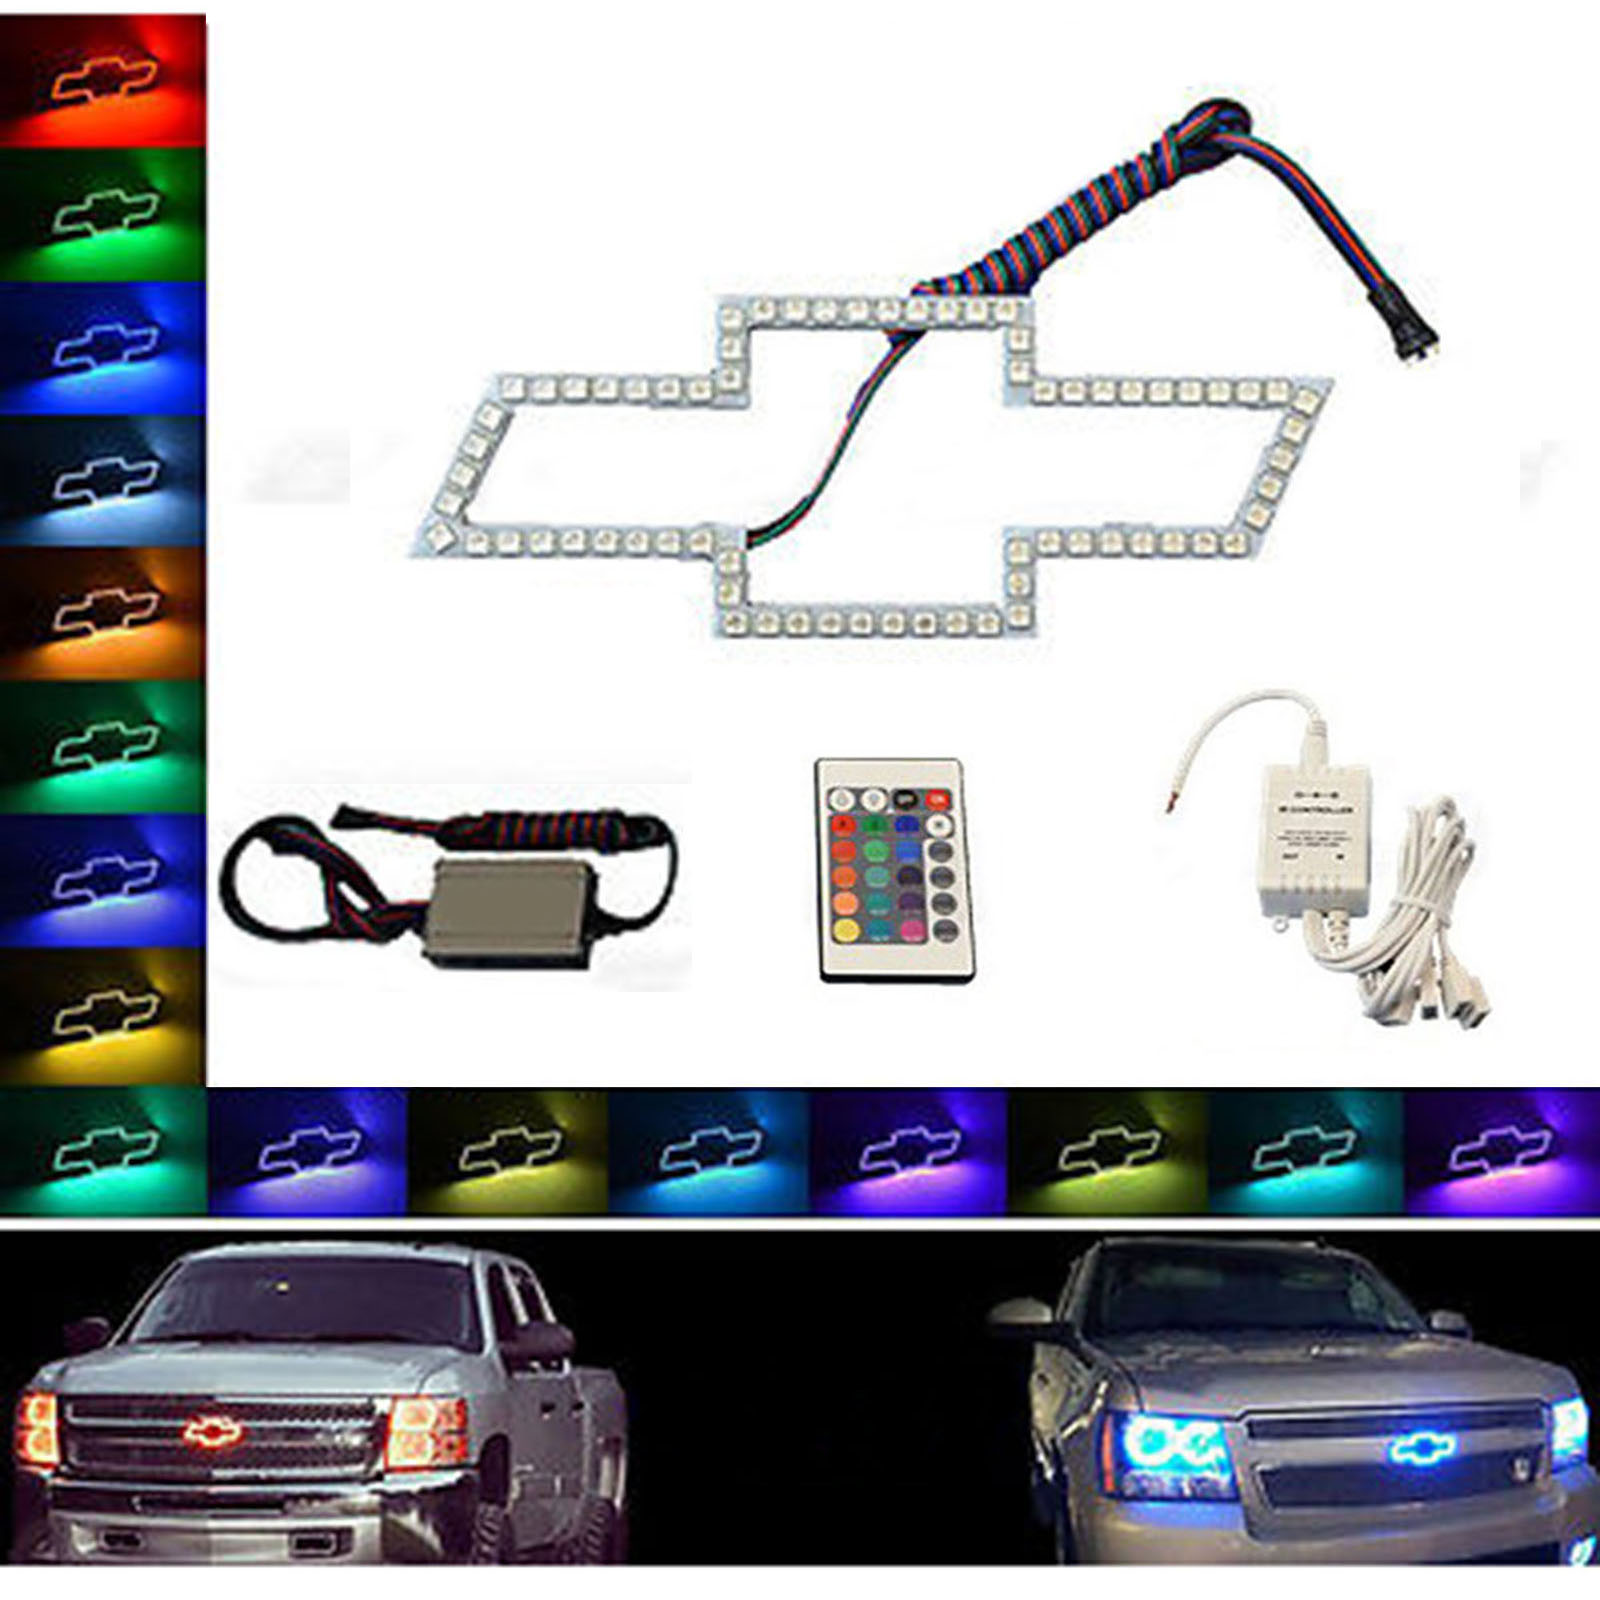 Led Light Up Chevy Grill Kit 2019 2020 Silverado Emblem Color Changing Chevrolet